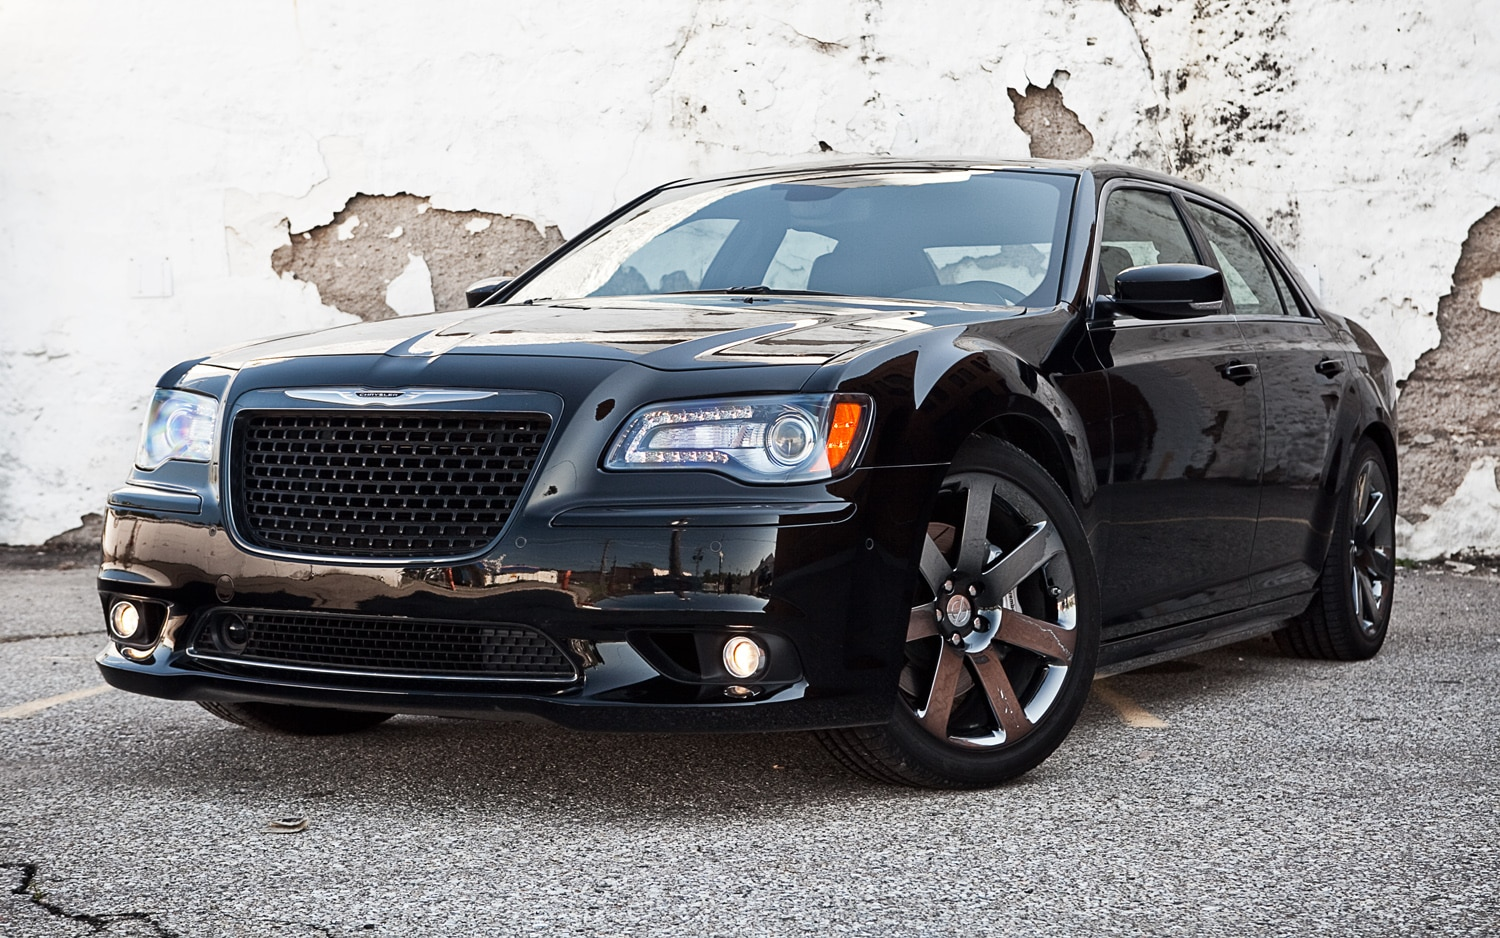 Chrysler 300srt >> 2012 Chrysler 300 SRT8 - Editors' Notebook - Automobile Magazine